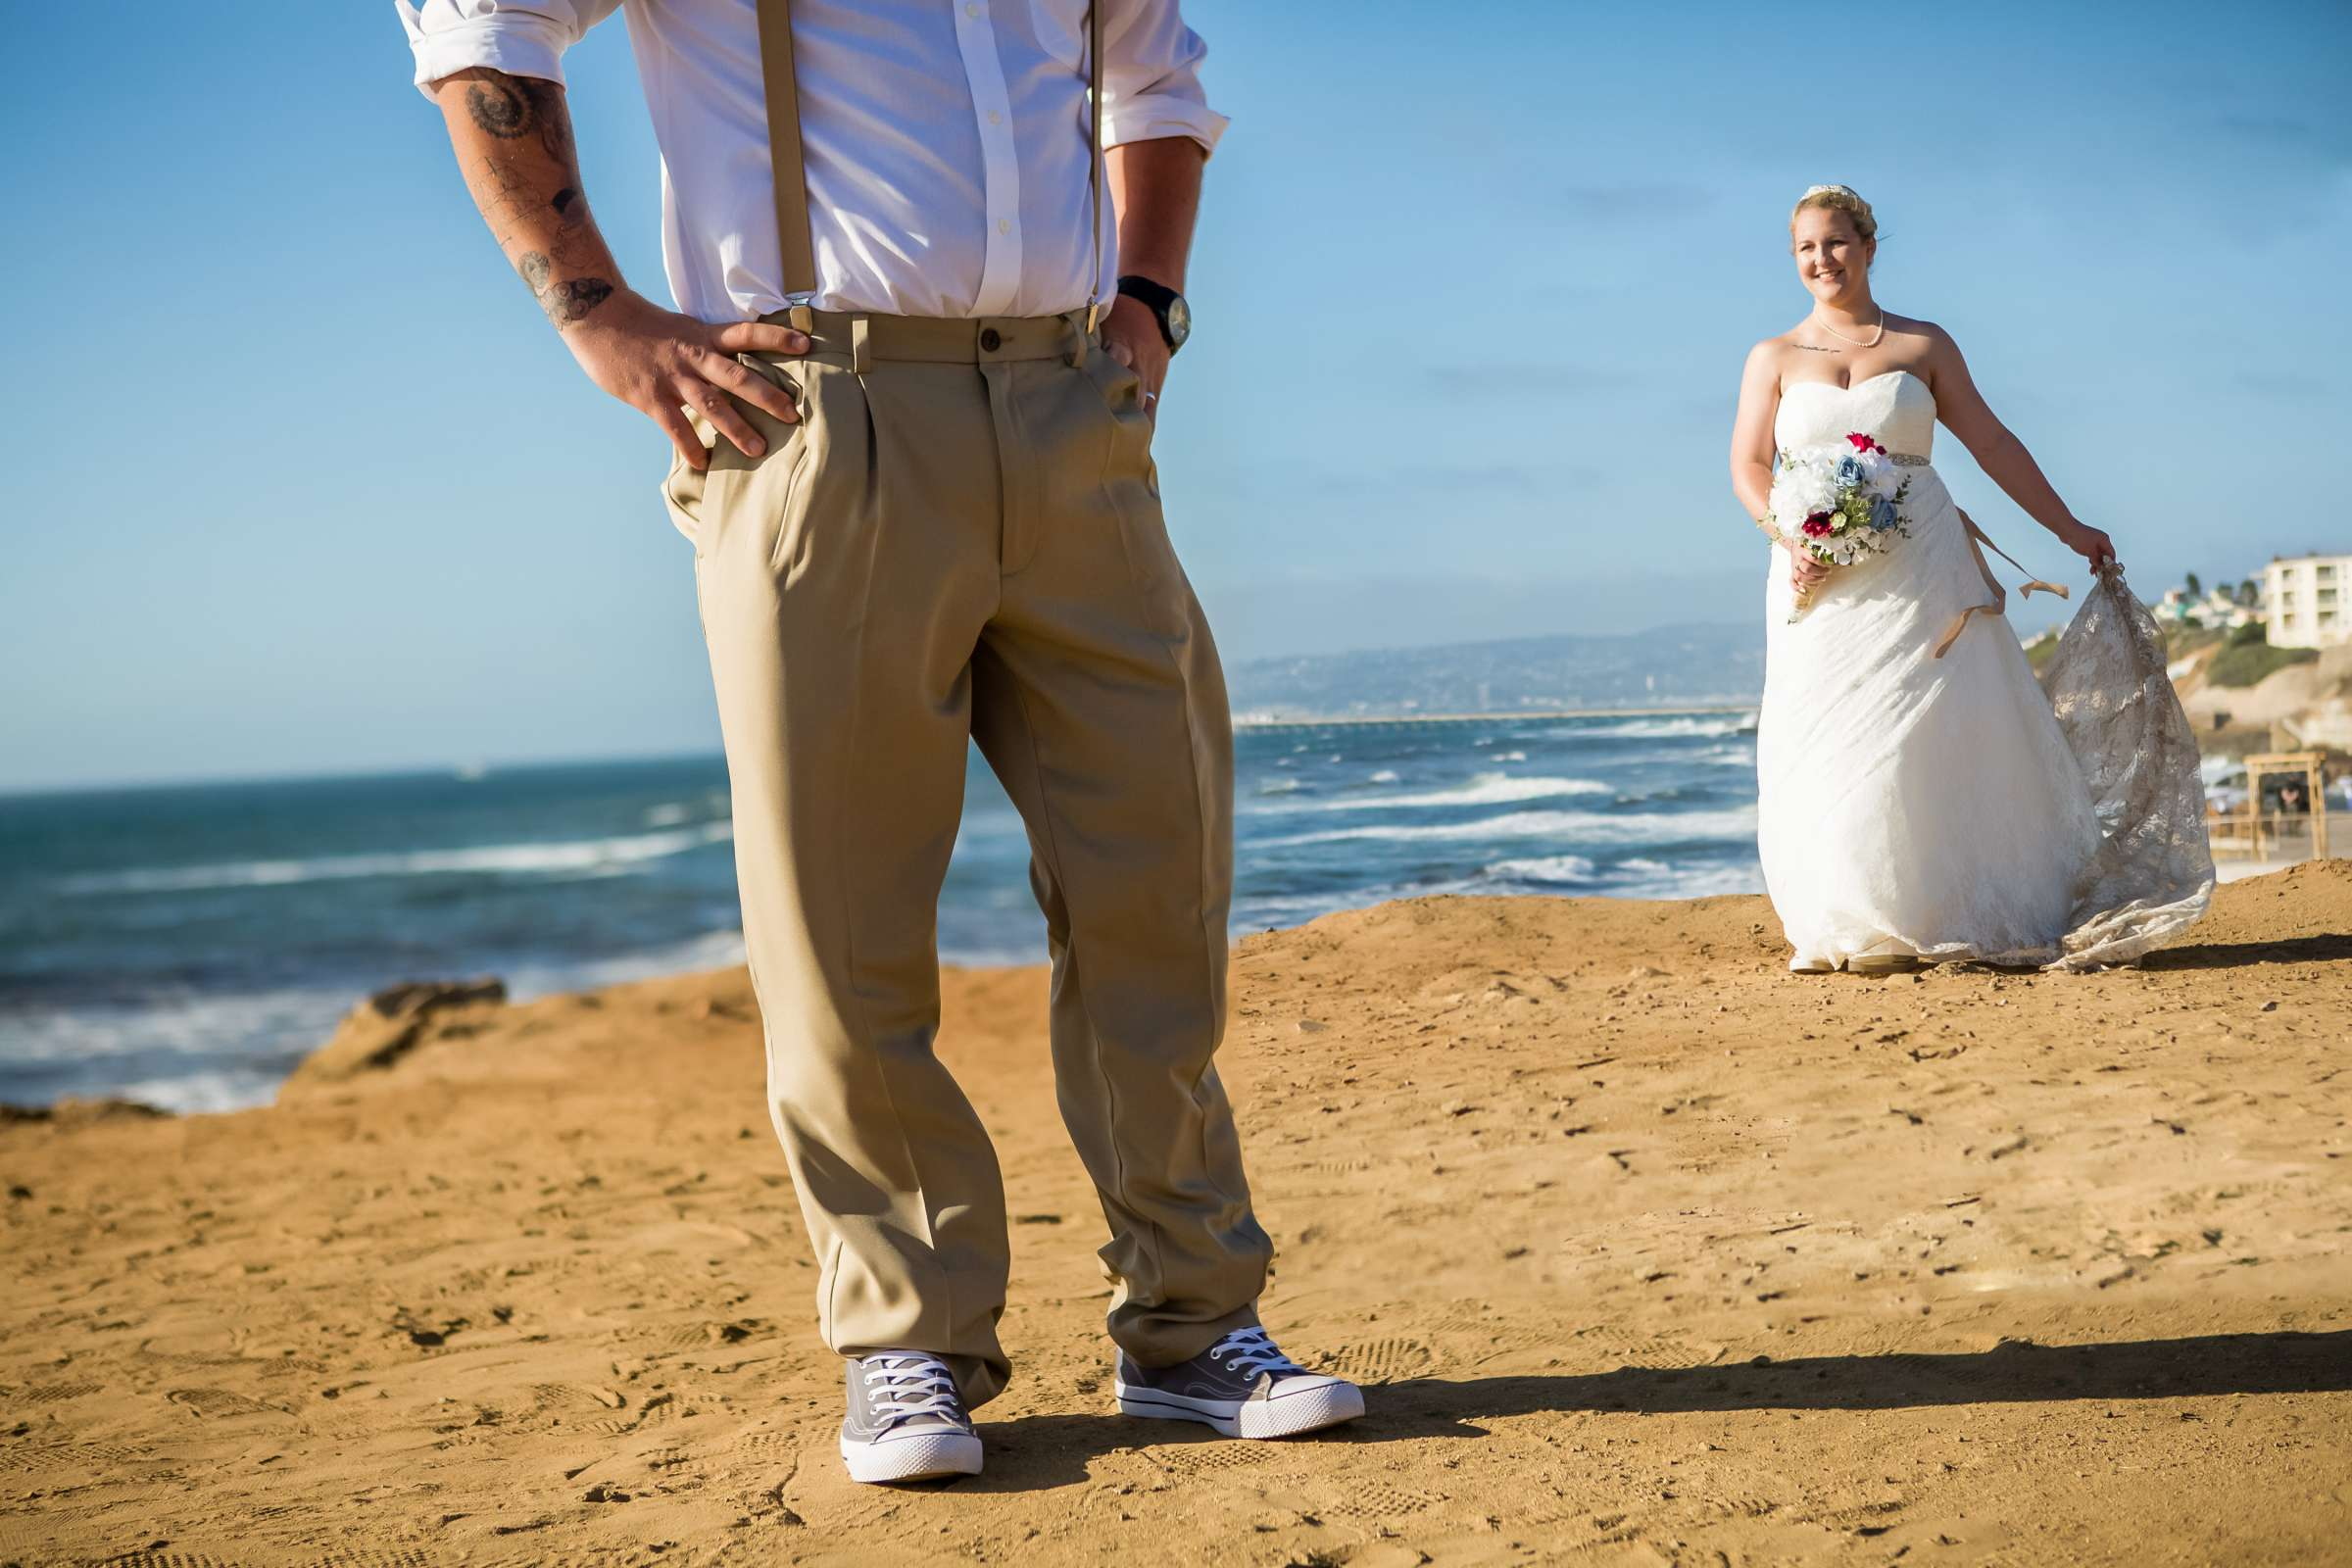 The Inn at Sunset Cliffs Wedding, Melinda and Benjamin Wedding Photo #2 by True Photography